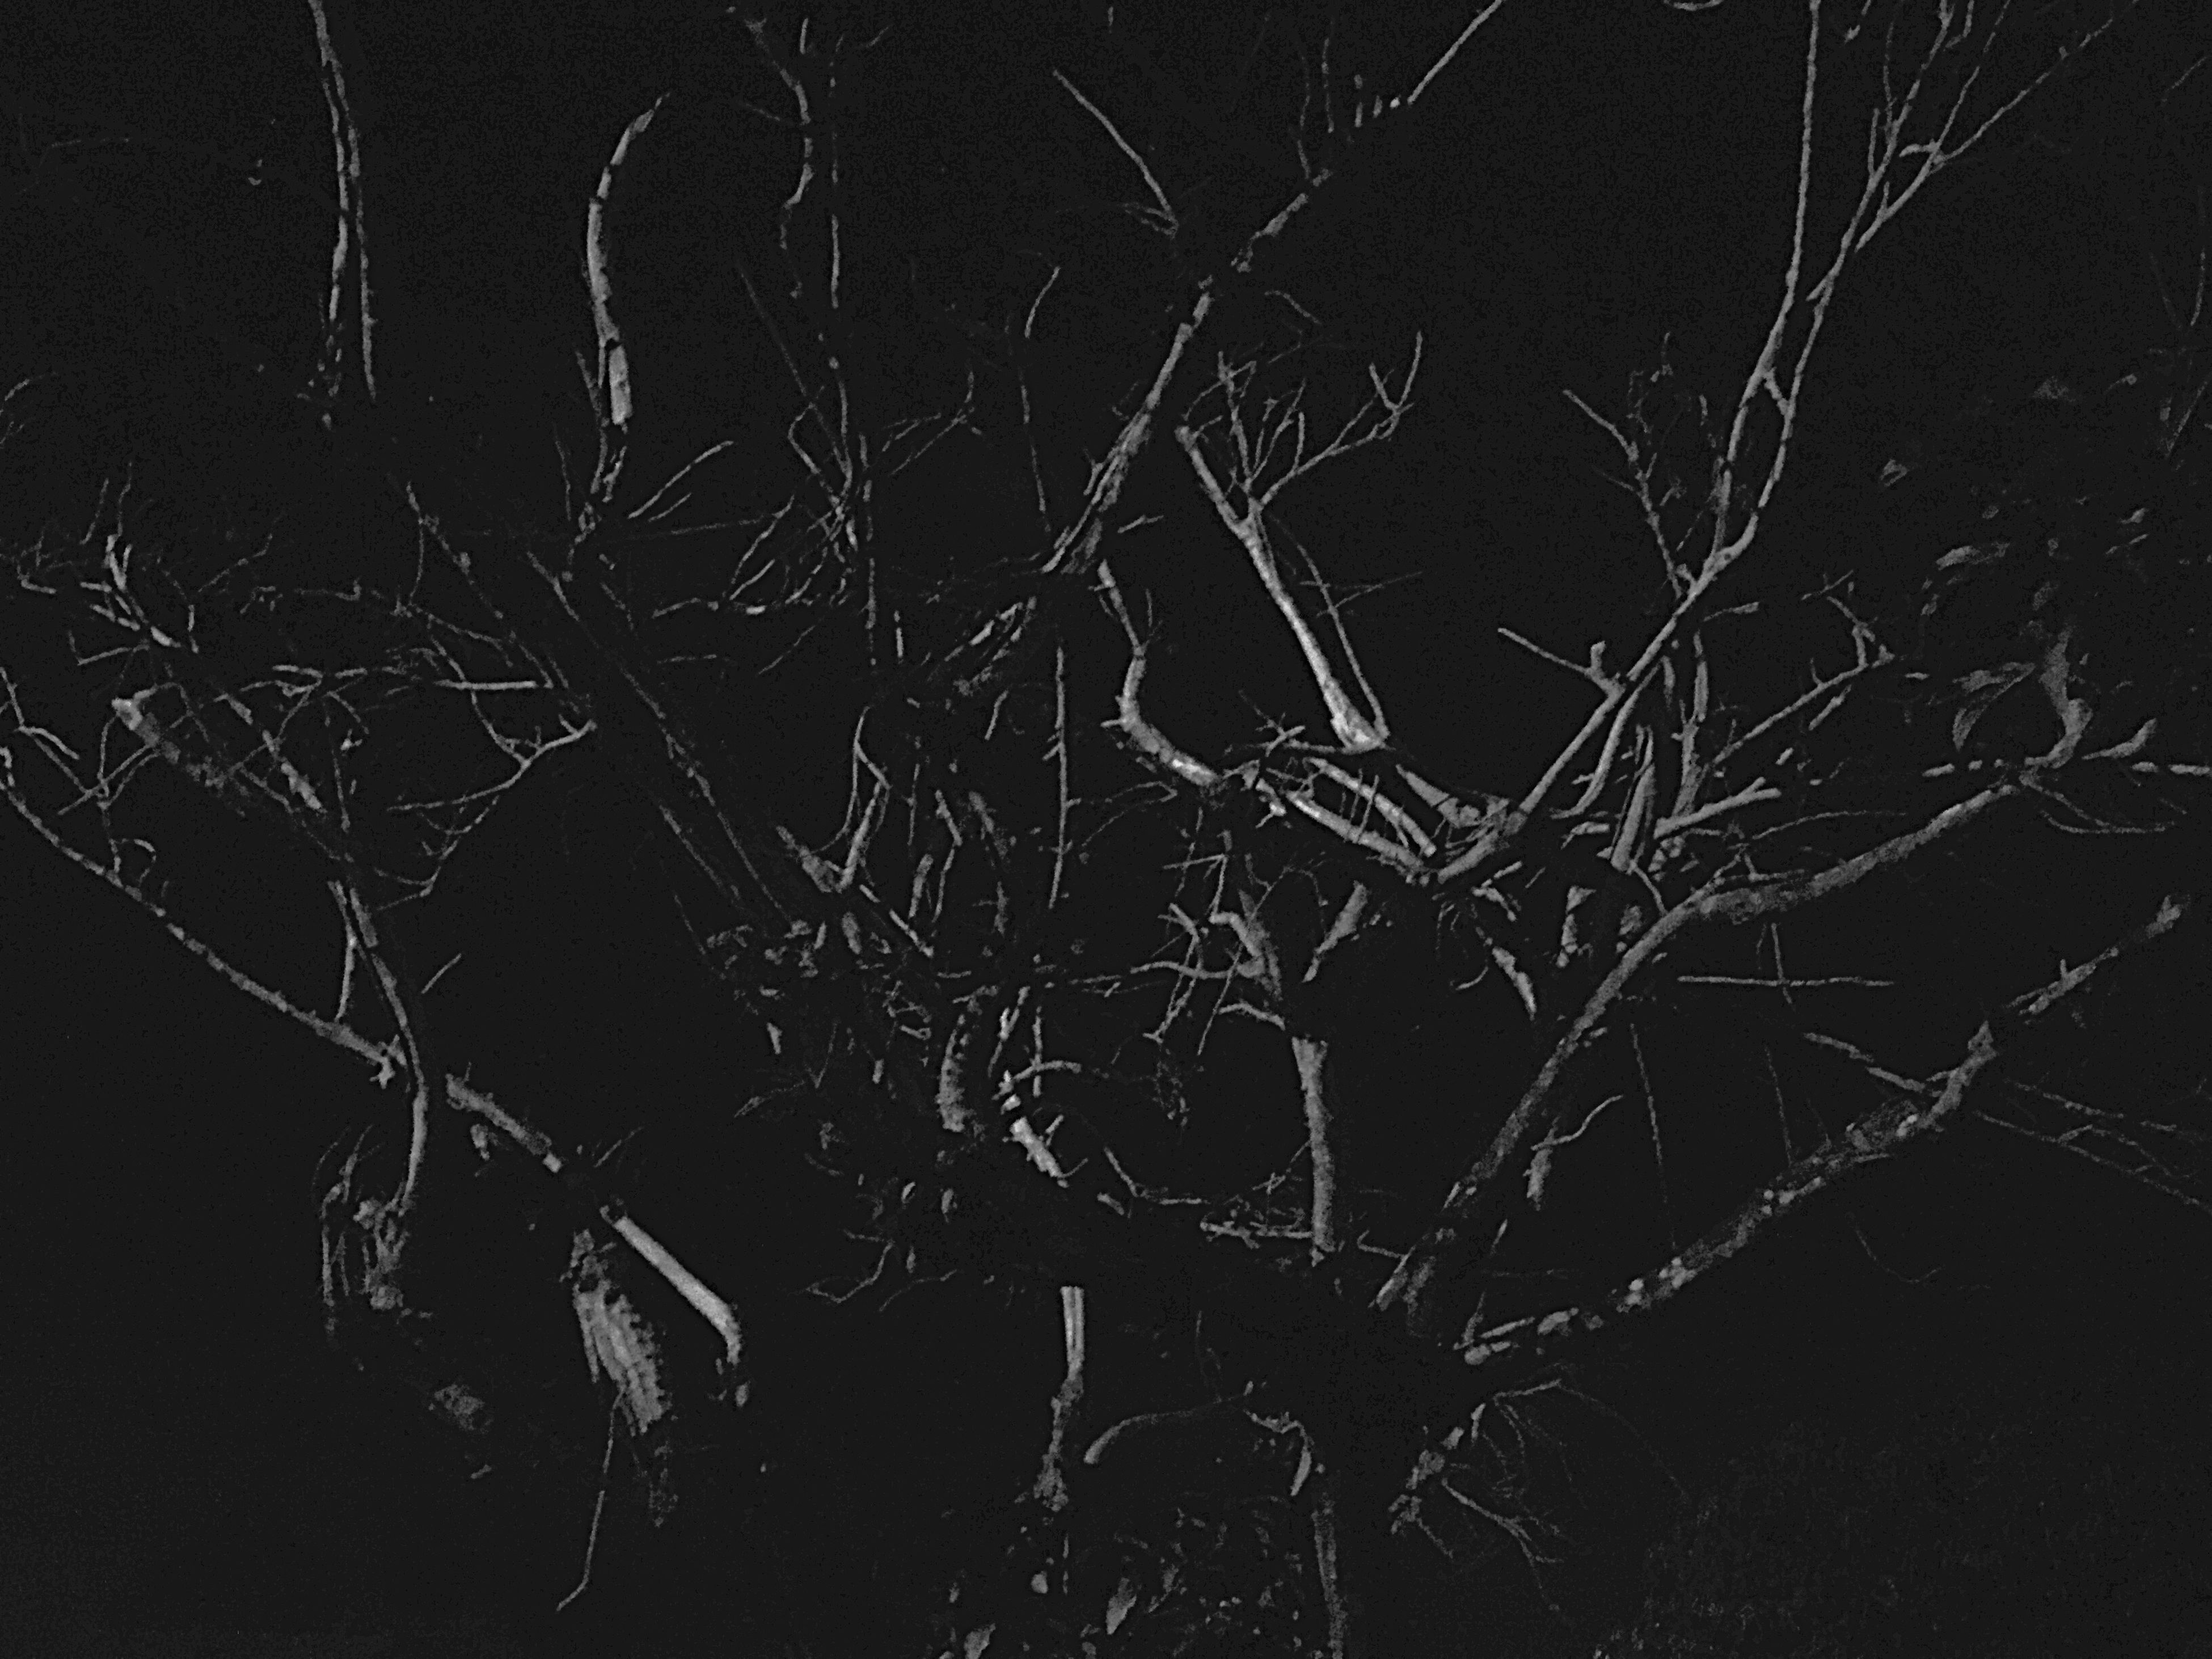 night, bare tree, illuminated, dark, low angle view, branch, silhouette, tree, light - natural phenomenon, sky, glowing, nature, no people, outdoors, tranquility, lighting equipment, backgrounds, copy space, abstract, cold temperature